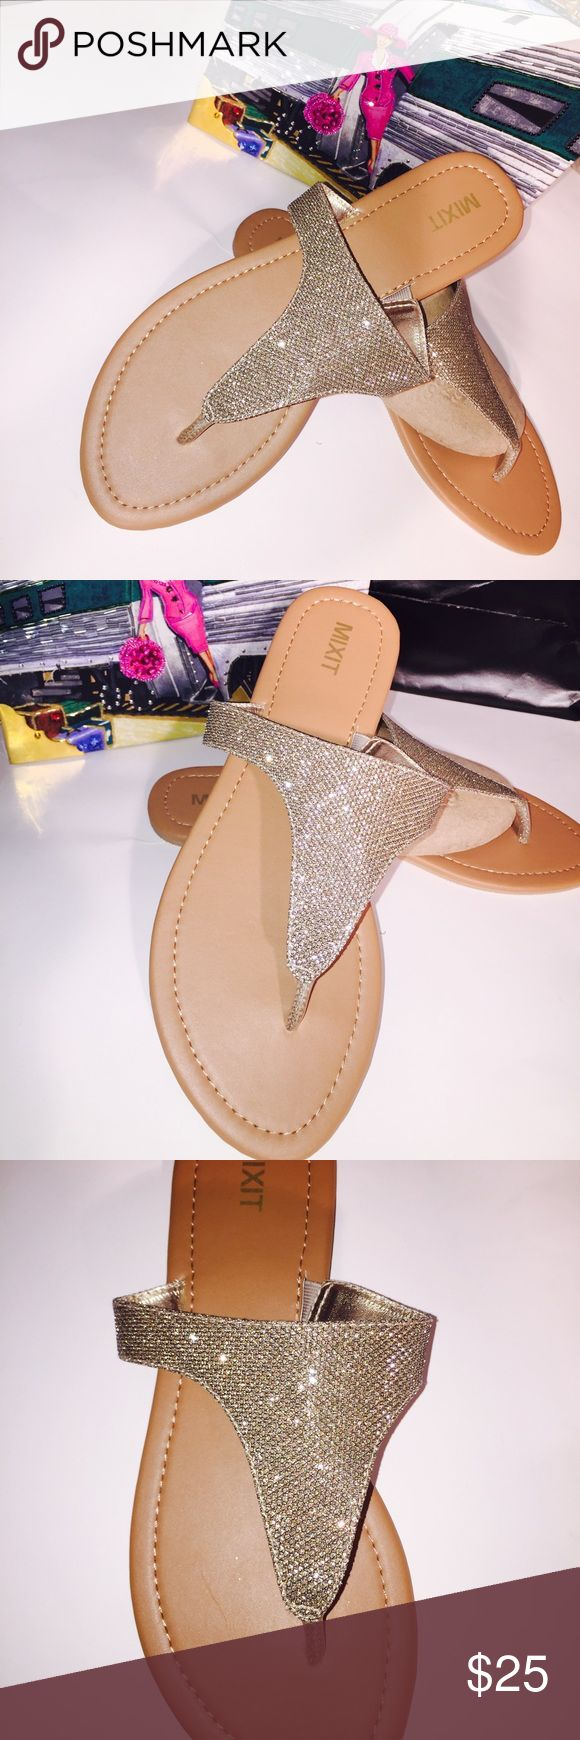 Sparkly glitter sandals 10 Sparkly glitter sandals/flip-flops flats brand-new beige and gold Shop and feel good about it 😁. Part of the money u spend goes to Purple Heart Foundation 💜 MIXIT Shoes Sandals